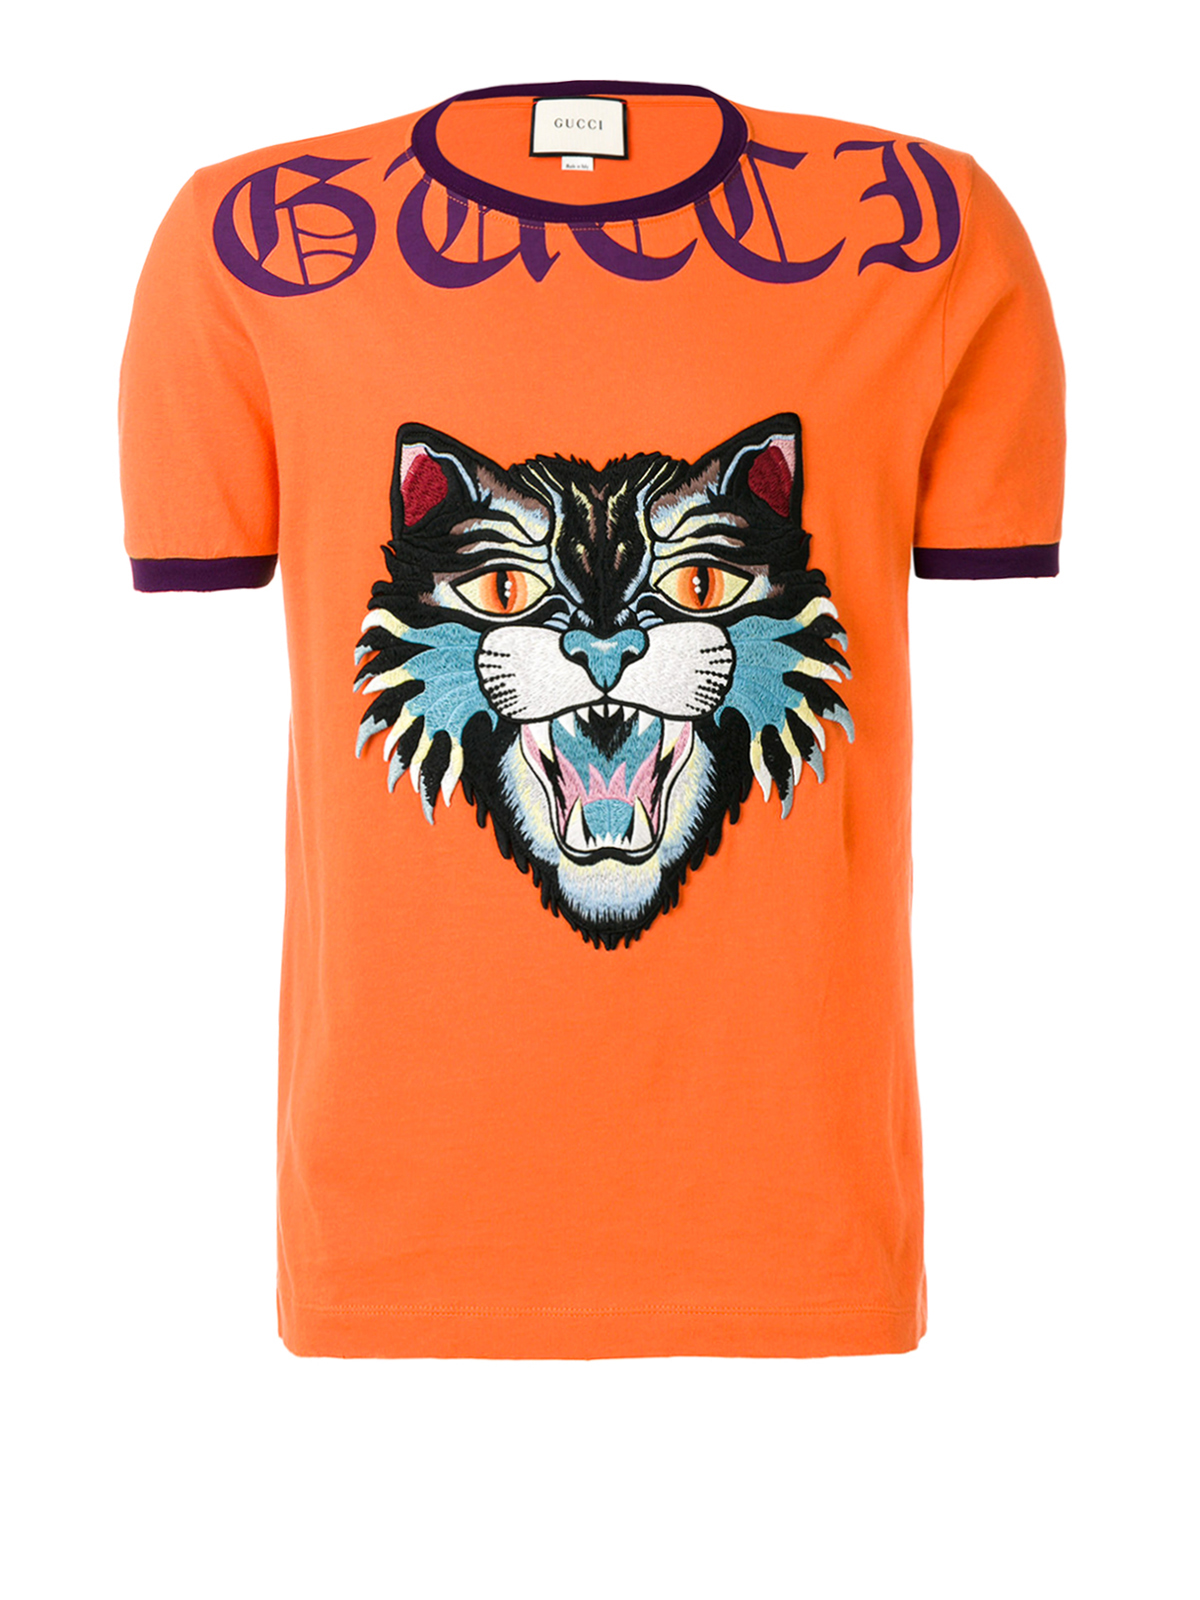 angry cat patch orange t shirt by gucci t shirts ikrix. Black Bedroom Furniture Sets. Home Design Ideas